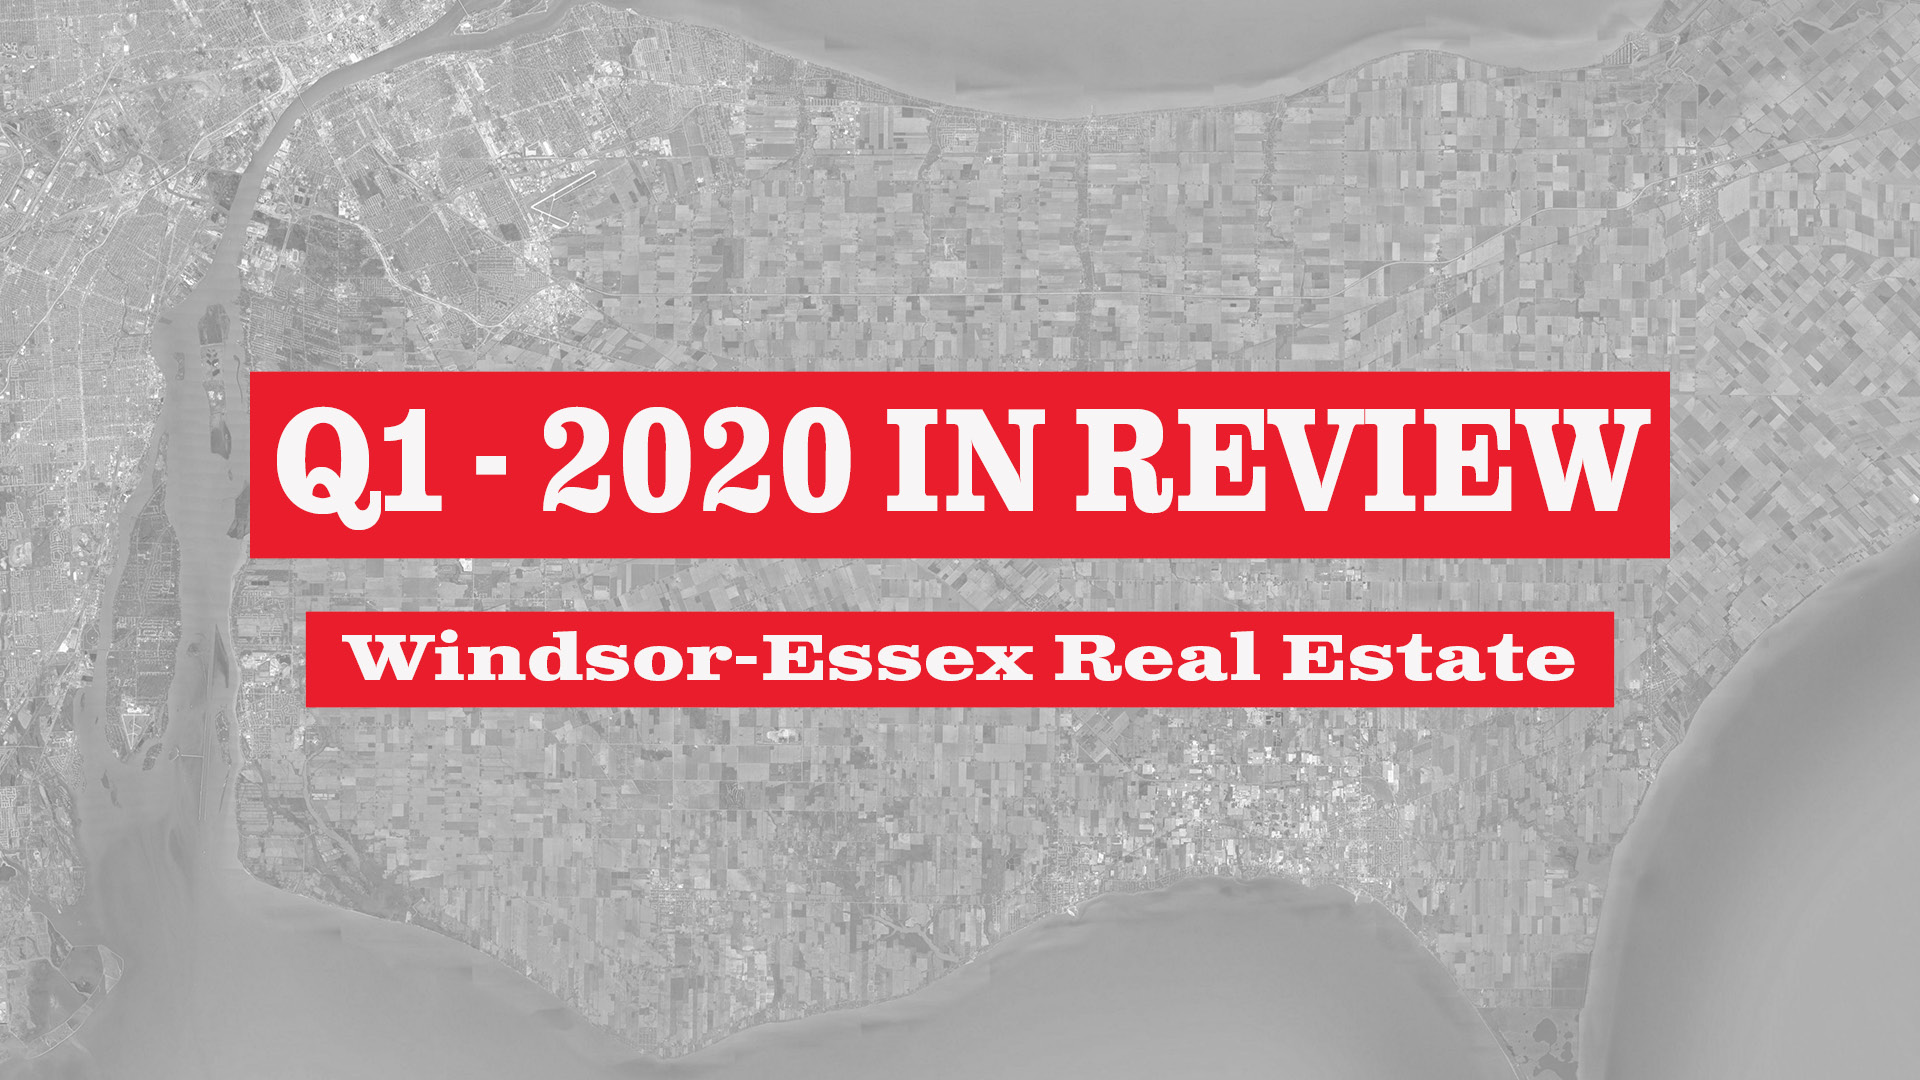 Q1 - 2020 Market Statistics Windsor-Essex County Real Estate